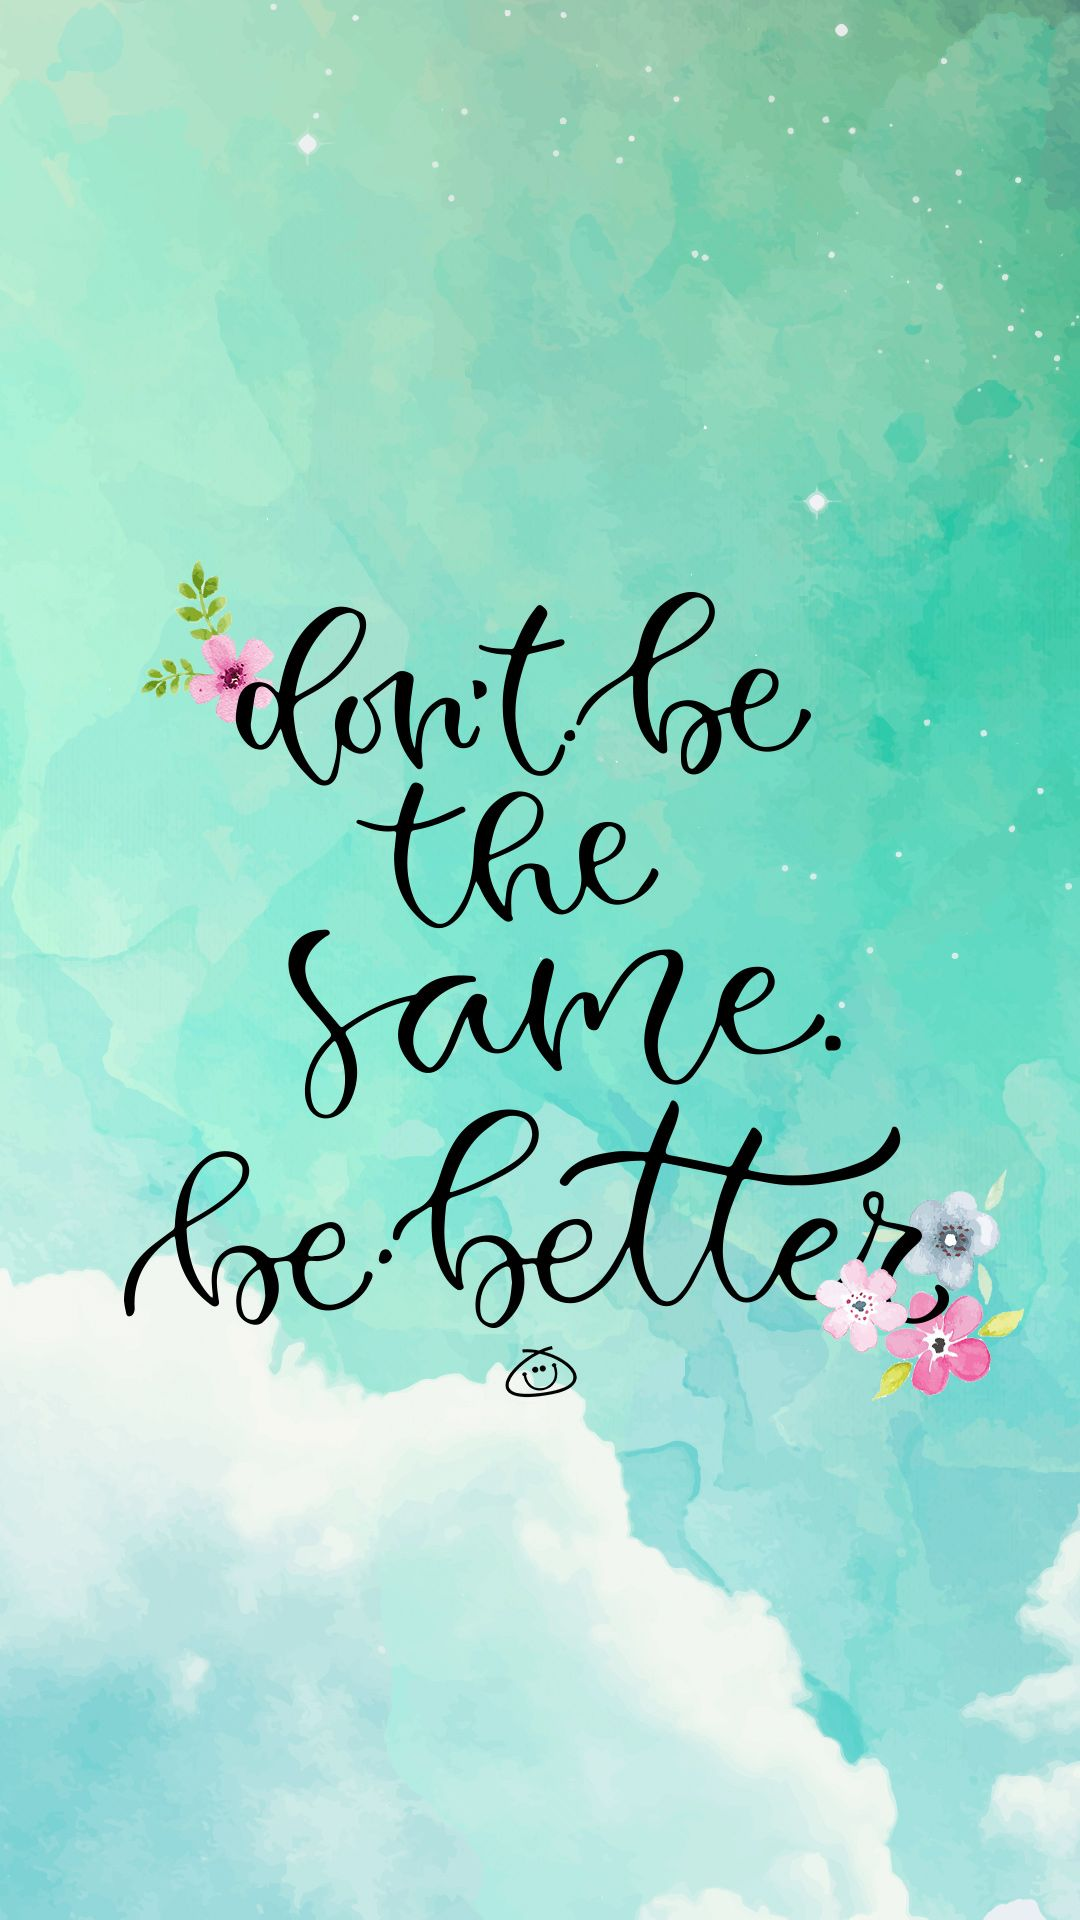 Free Colorful Smartphone Wallpaper December 25th Colorful Zone Wallpaper Quotes Positive Quotes Inspirational Quotes Wallpapers